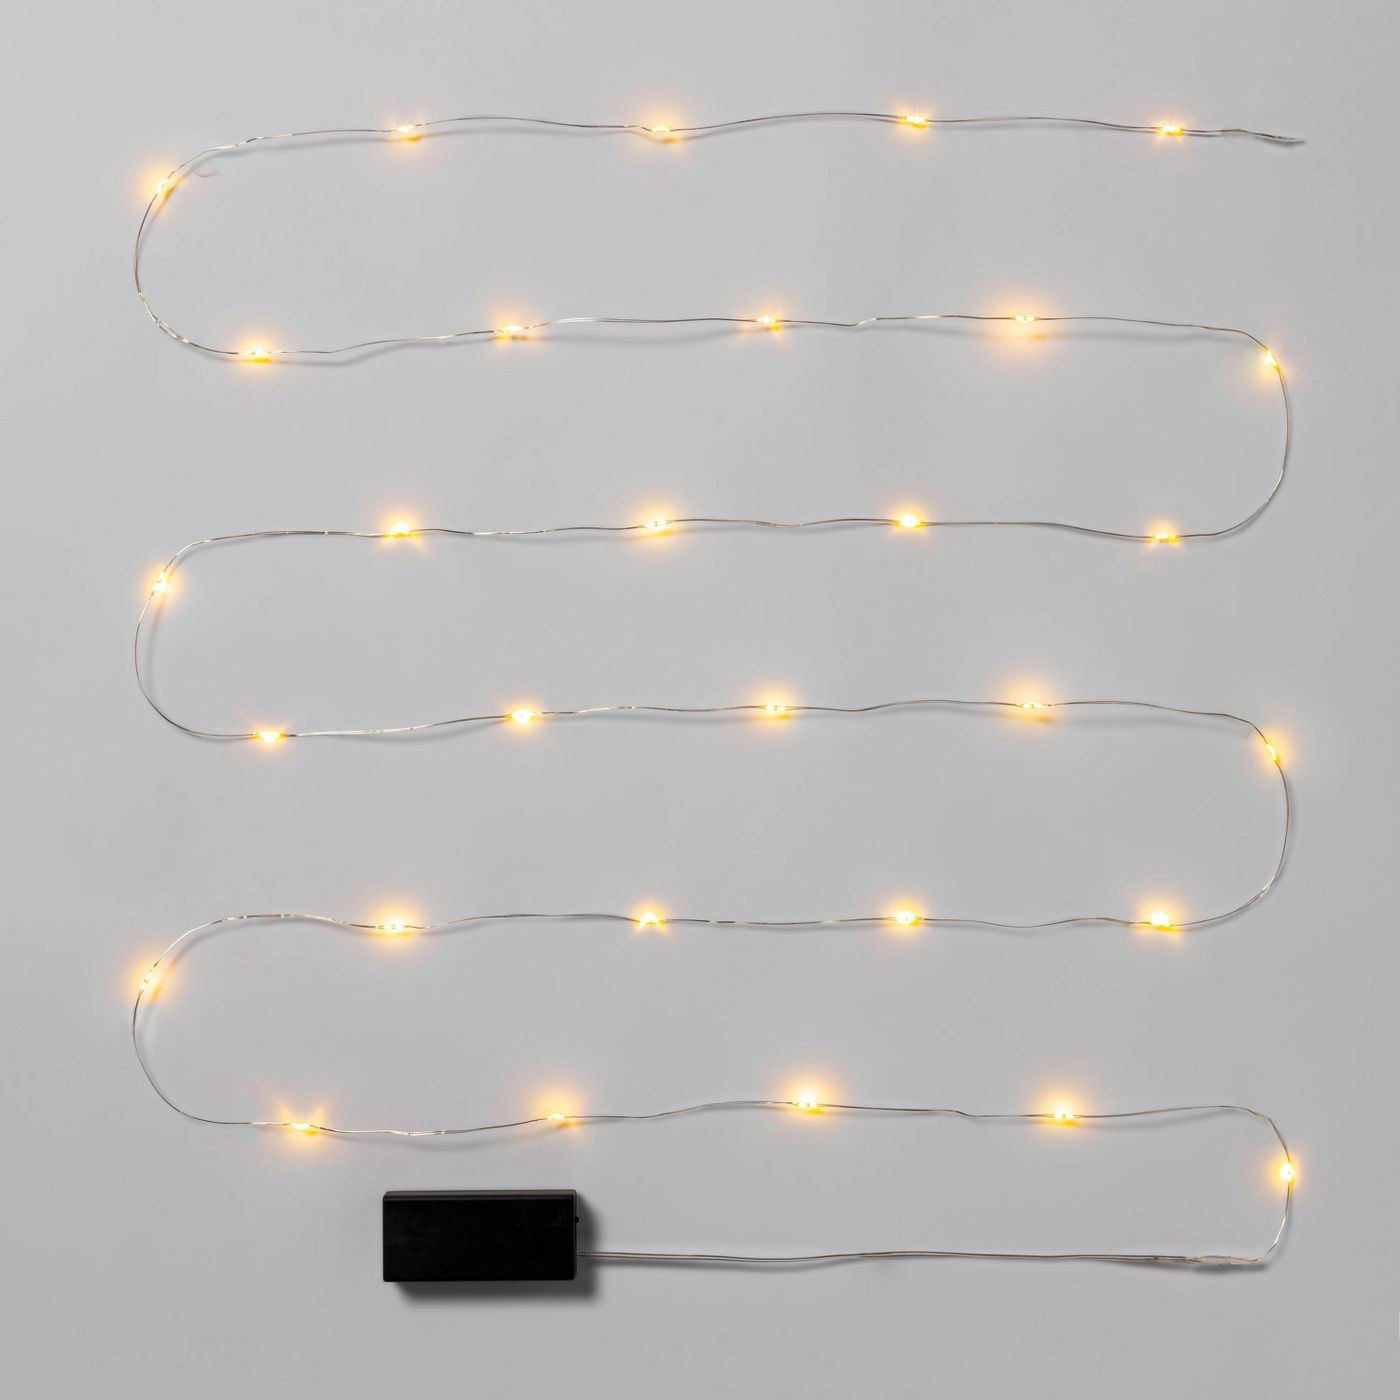 Wondershop Christmas Battery Operated LED String Fairy Lights in Warm White Silver Wire